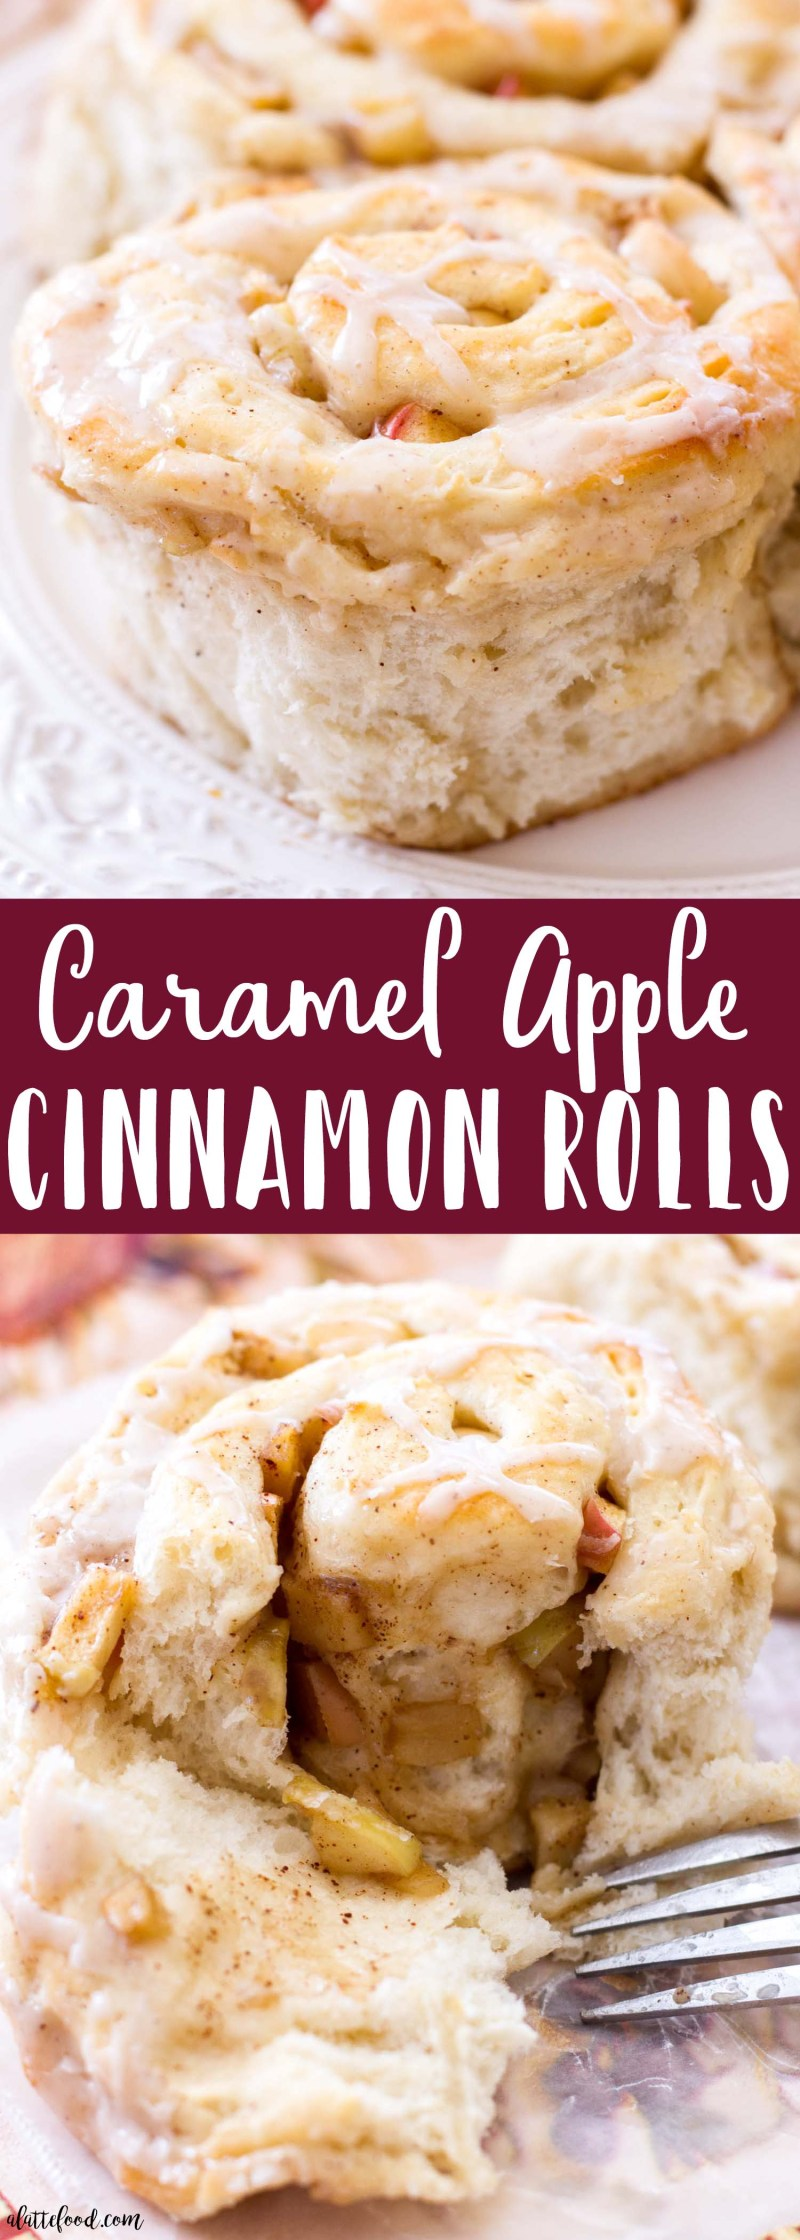 These homemade cinnamon rolls are full of cinnamon apples and rich caramel flavor. These Caramel Apple Cinnamon Rolls make the perfect fall breakfast, as they taste amazing and are such an easy cinnamon roll recipe! Perfect for Thanksgiving too!